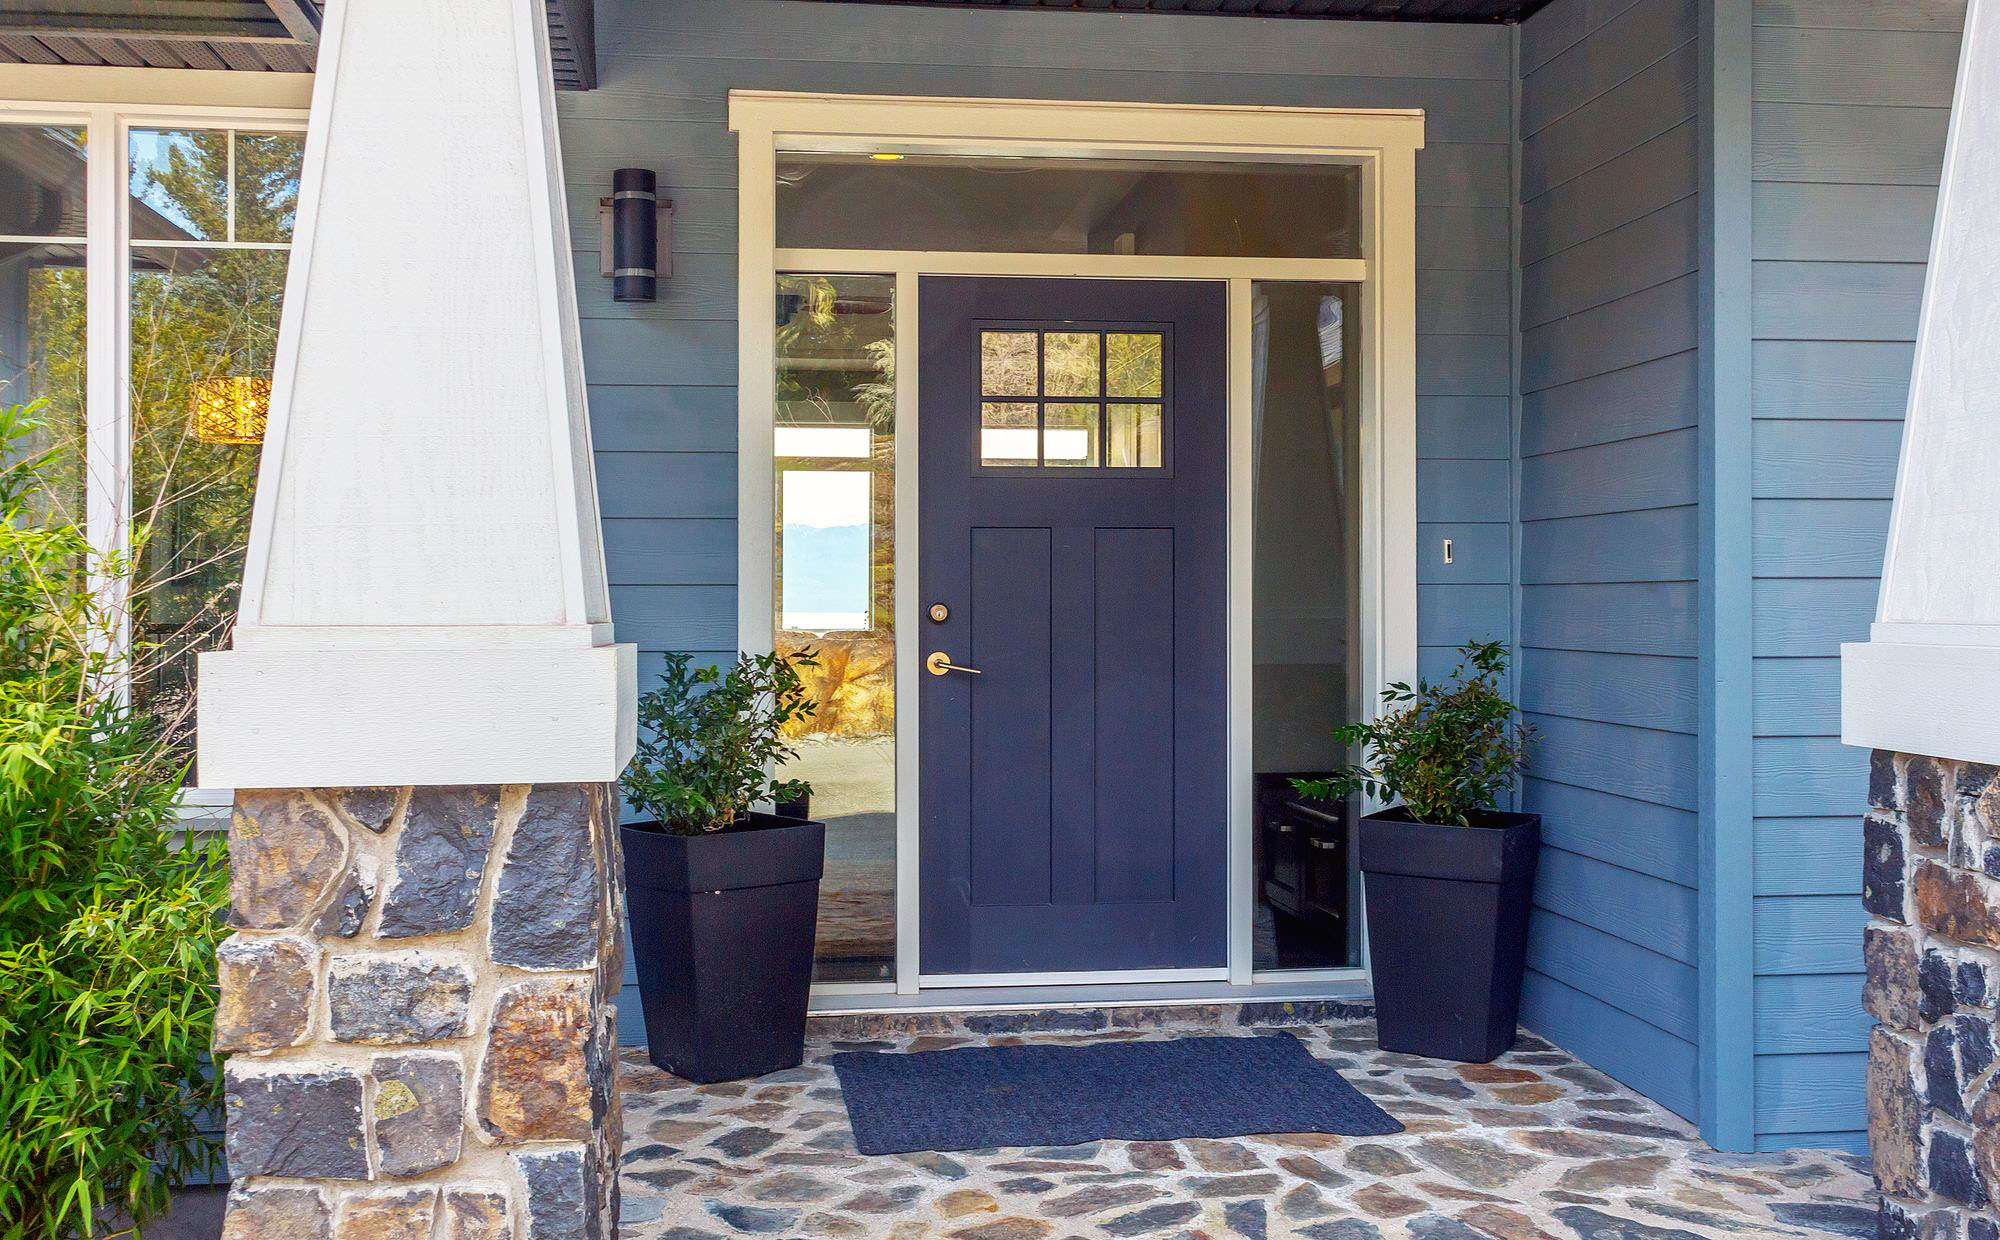 This beautiful blue home features light blue siding, a deep blue front door and real stones with a blueish coloring.